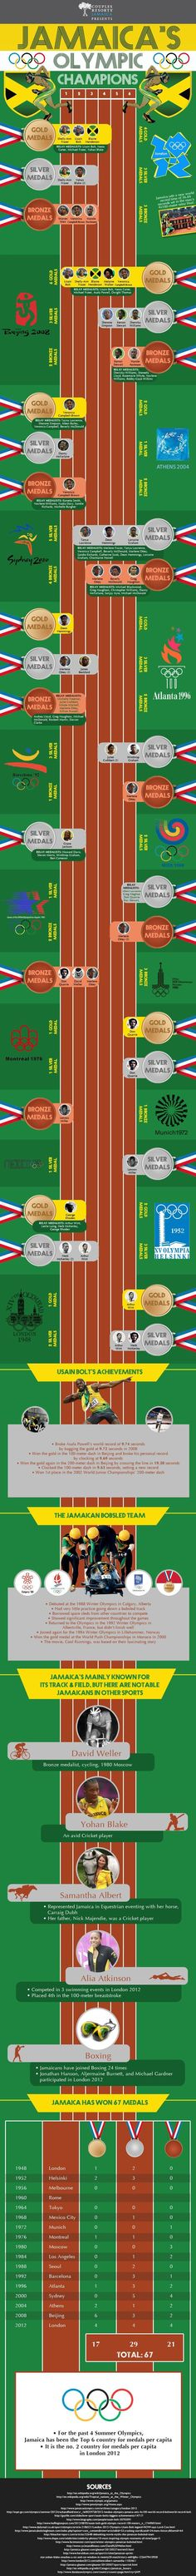 Jamaican Olympians Throughout History